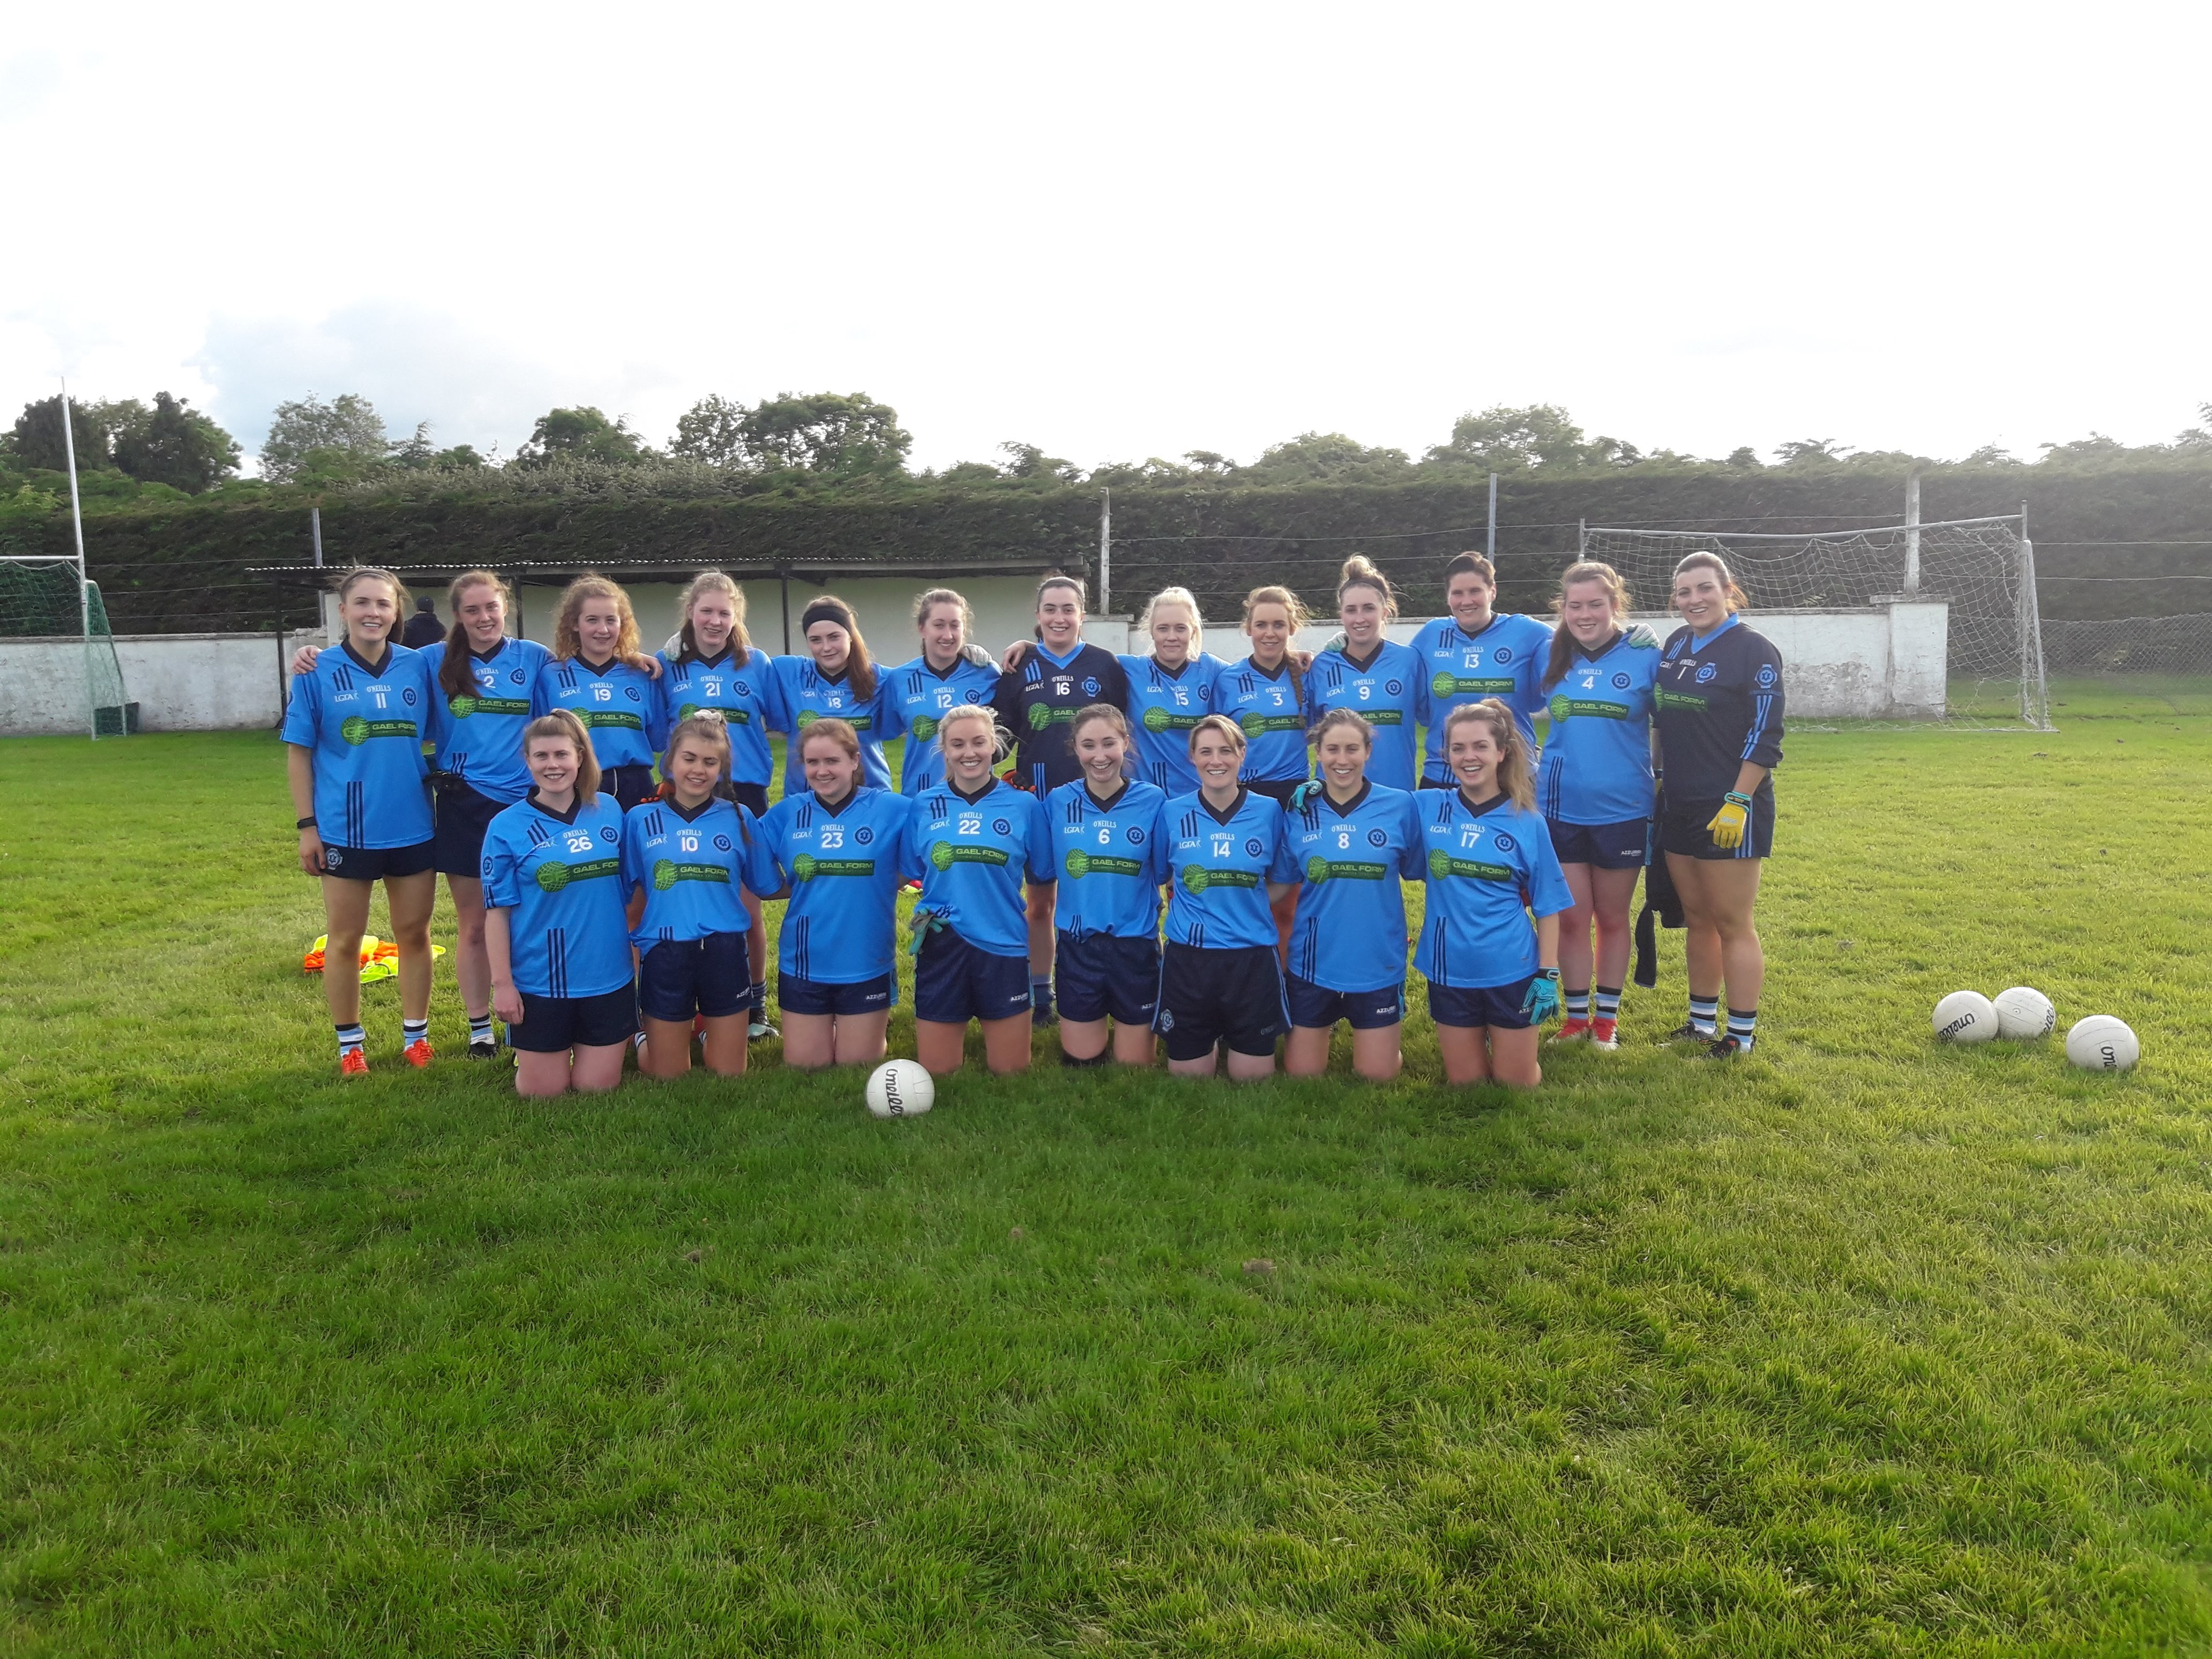 St Colmcilles A Defensive Strength And Rapid-fire Scoring Secures League Win Away To St Ultans A